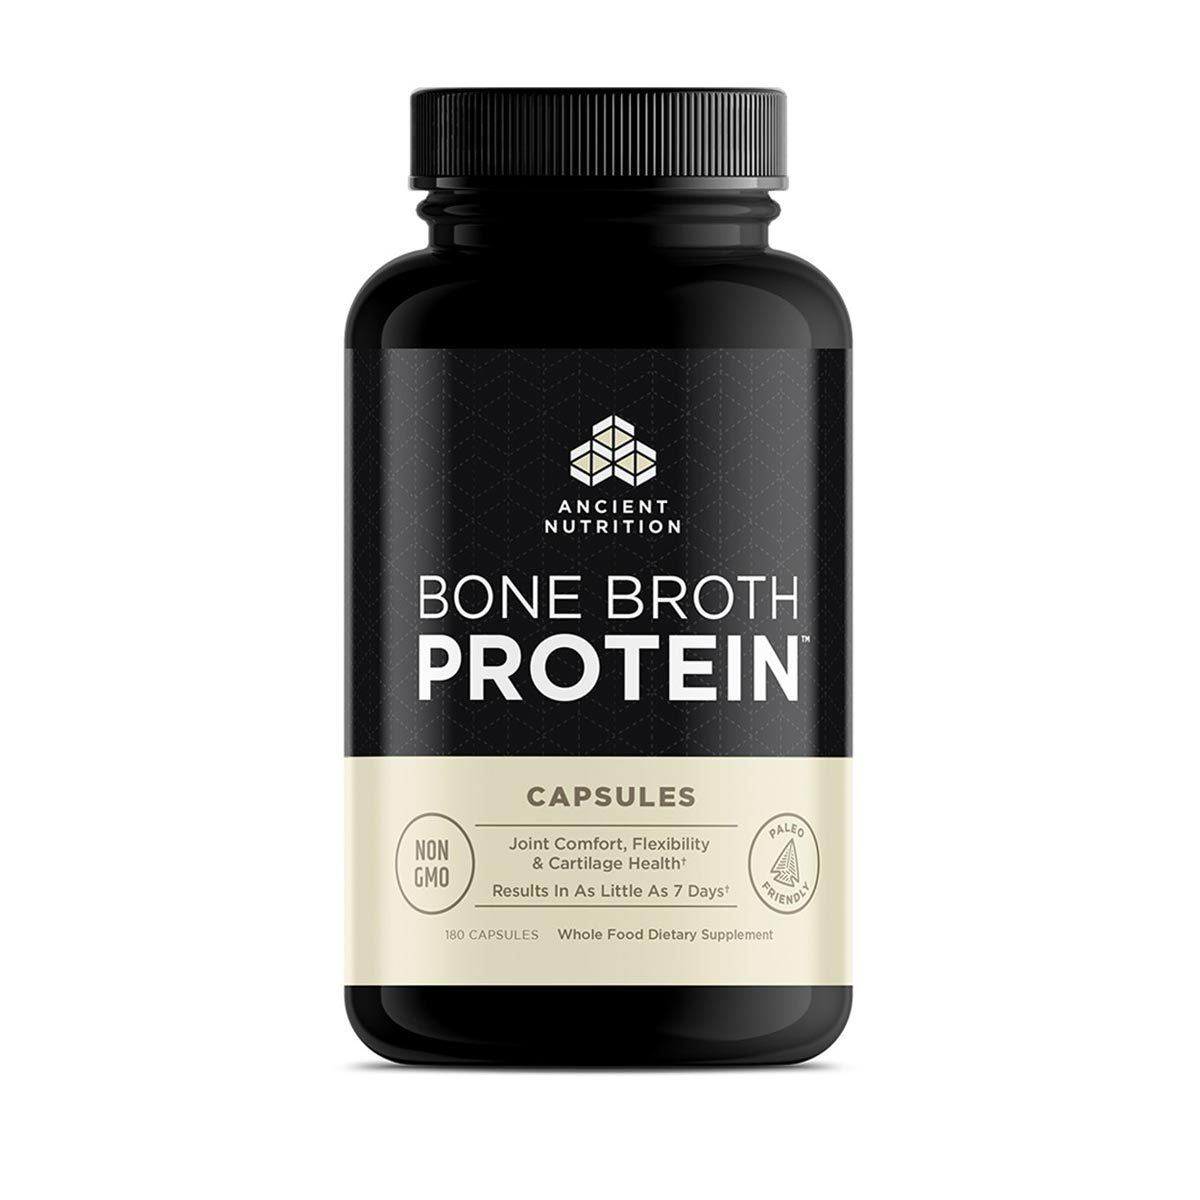 Ancient Nutrition Bone Broth Protein 180ct Protein Ancient Nutrition  (1059285303339)